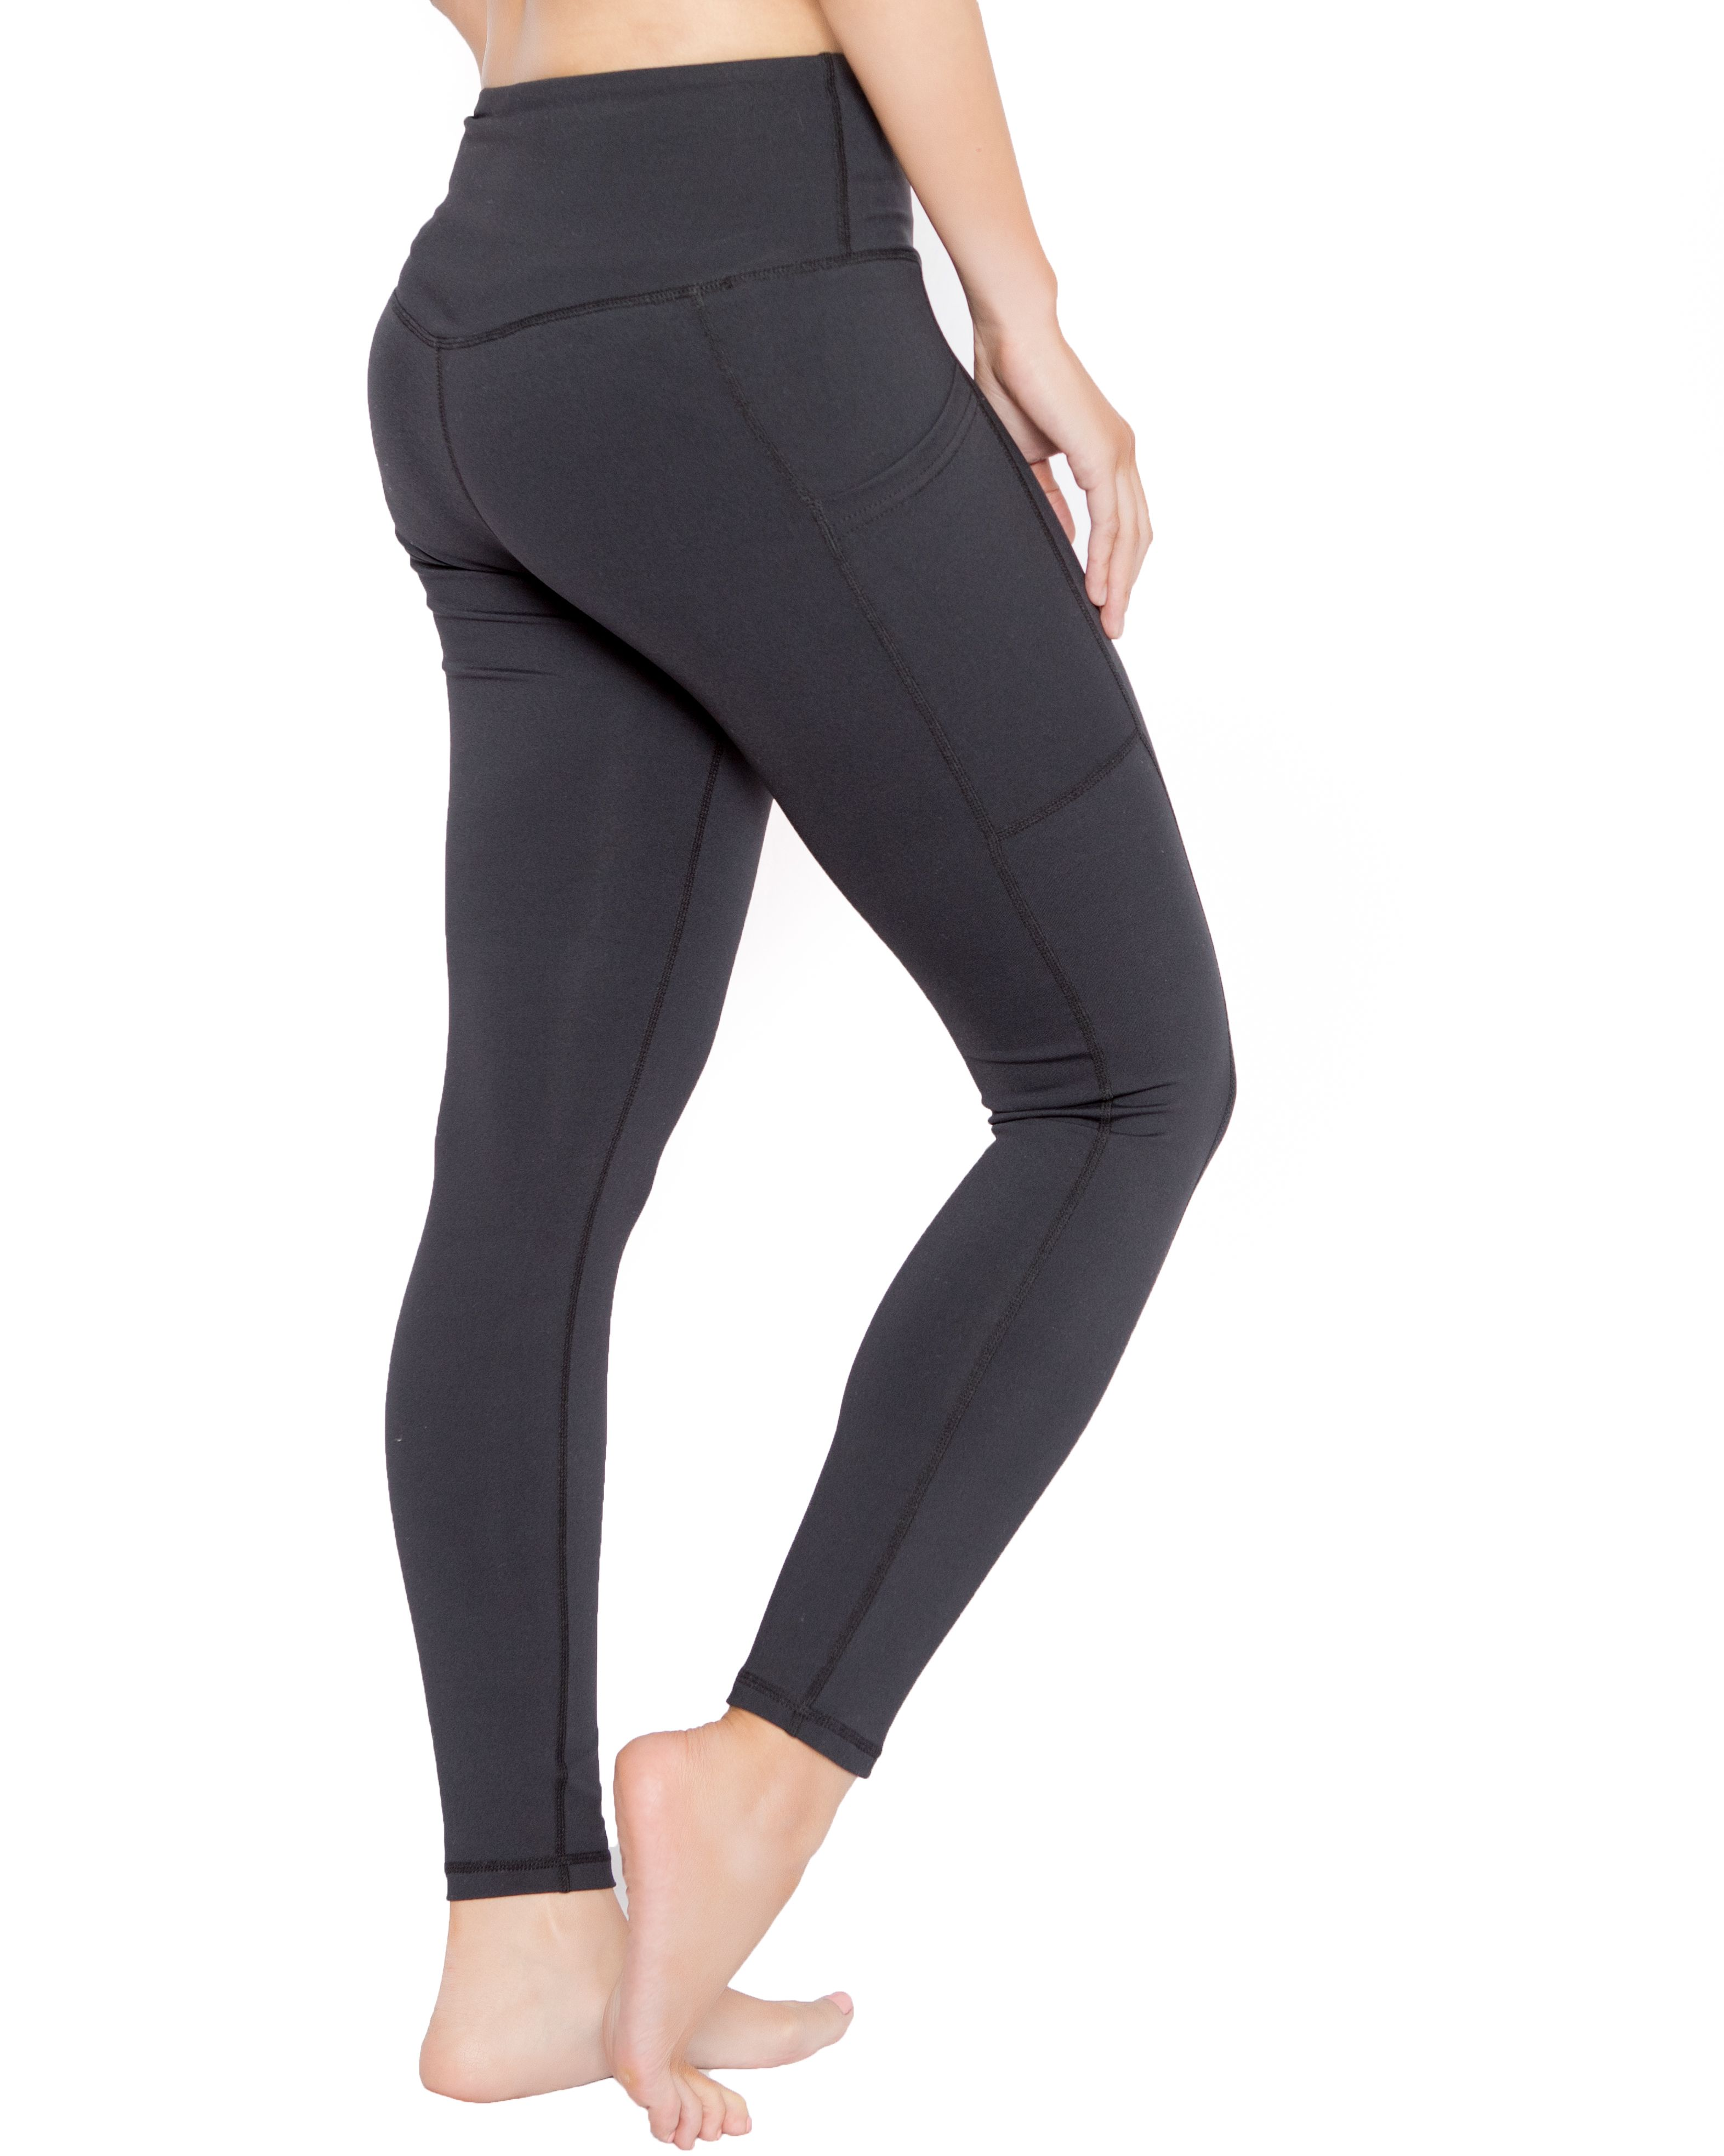 Liuz Yoga Pants for Women Tummy Control Workout Running Tights High Waisted Leggings with Pocket